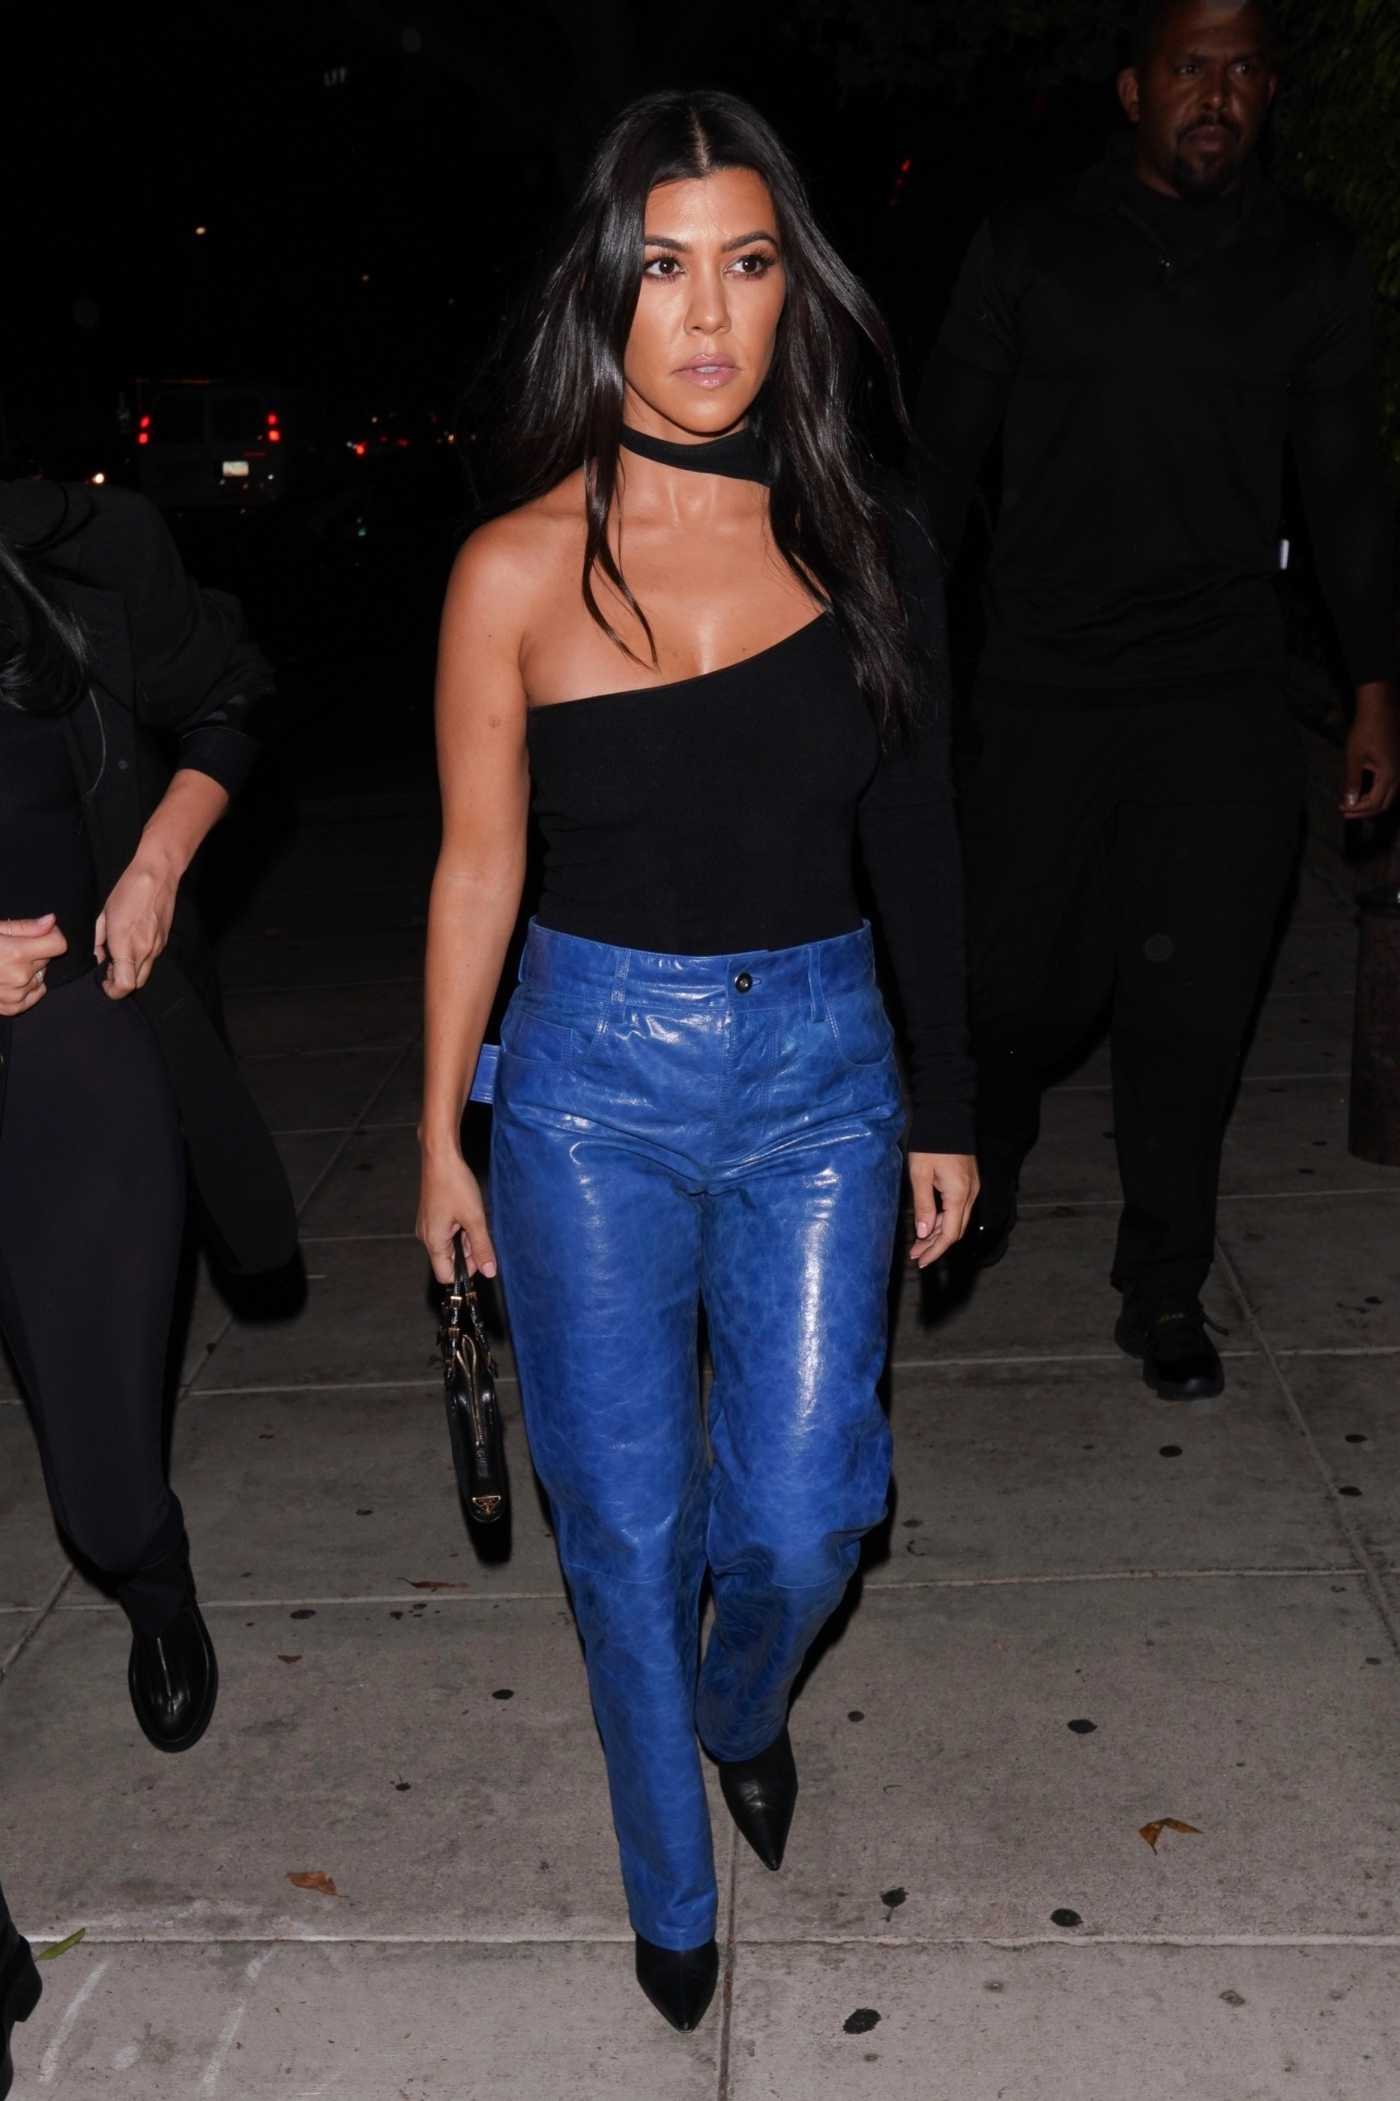 Kourtney Kardashian in a Blue Pants Leaves Nobu Restaurant in West Hollywood 10/18/2019